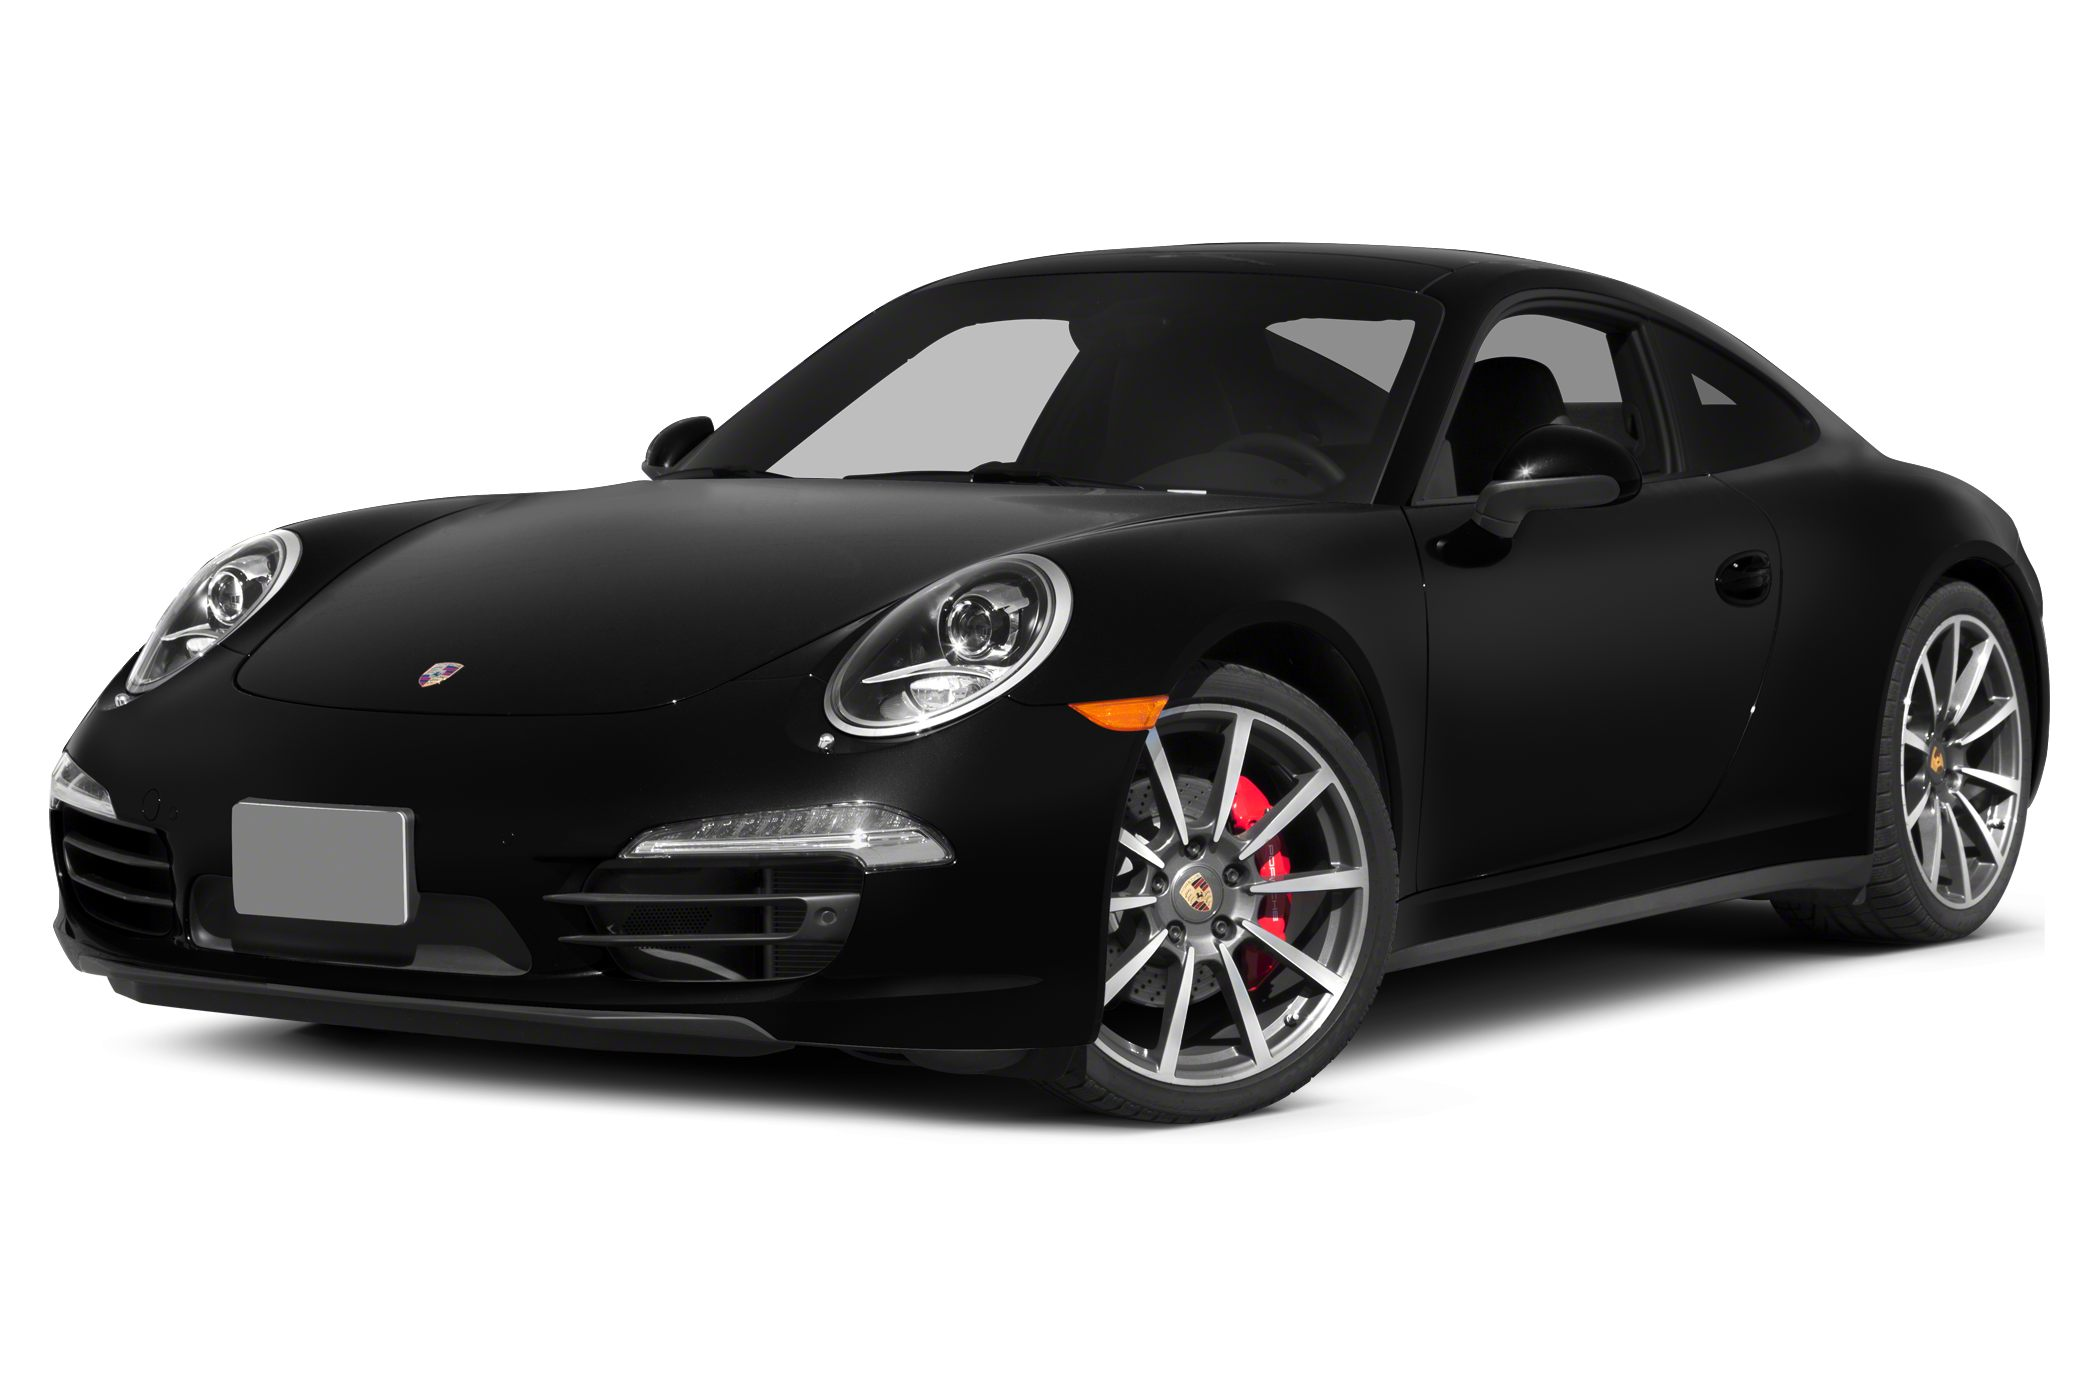 2013 Porsche 911 Carrera 4S Coupe for sale in Parsippany for $86,900 with 31,478 miles.